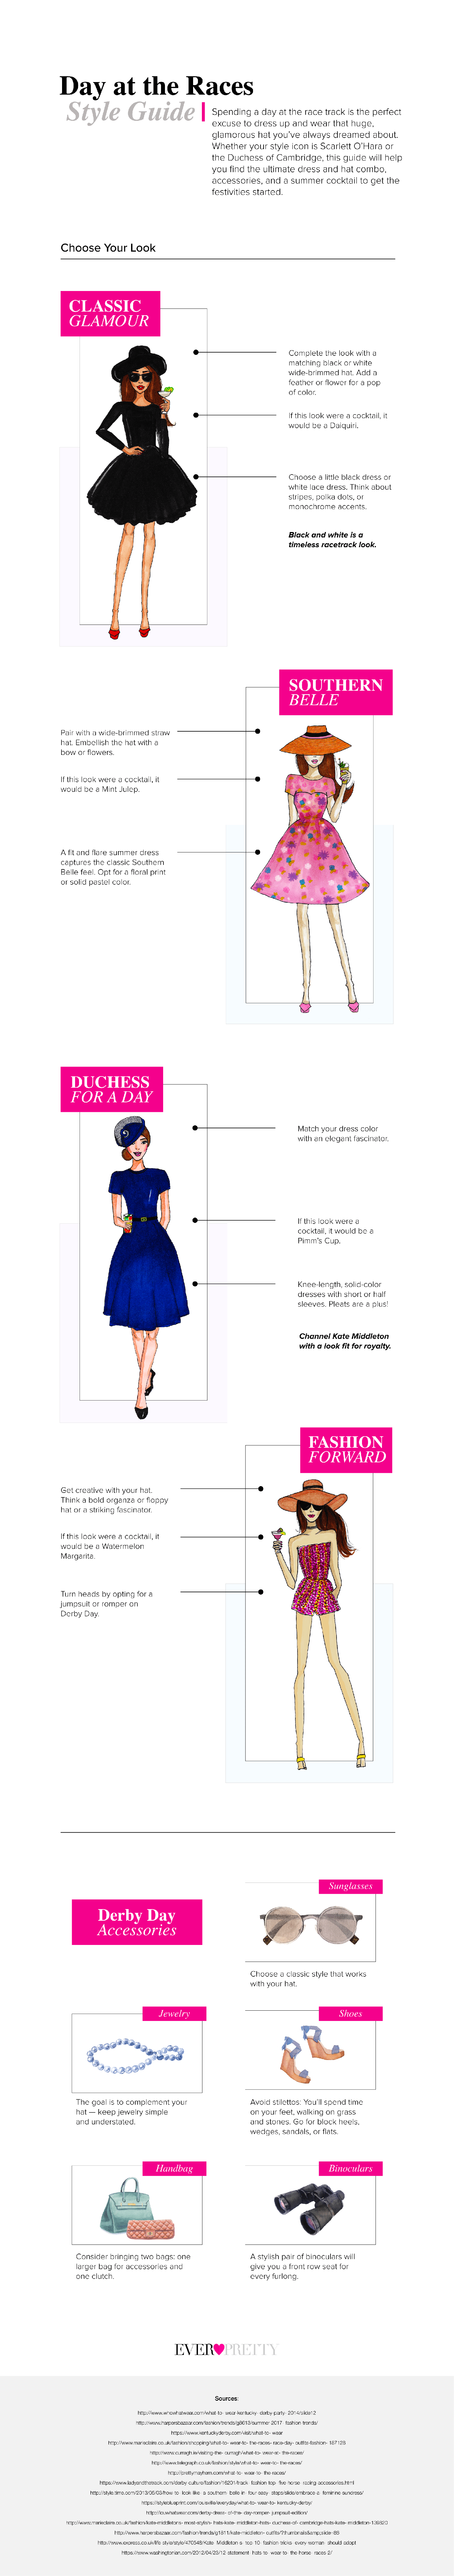 Dress for a Day at the Races